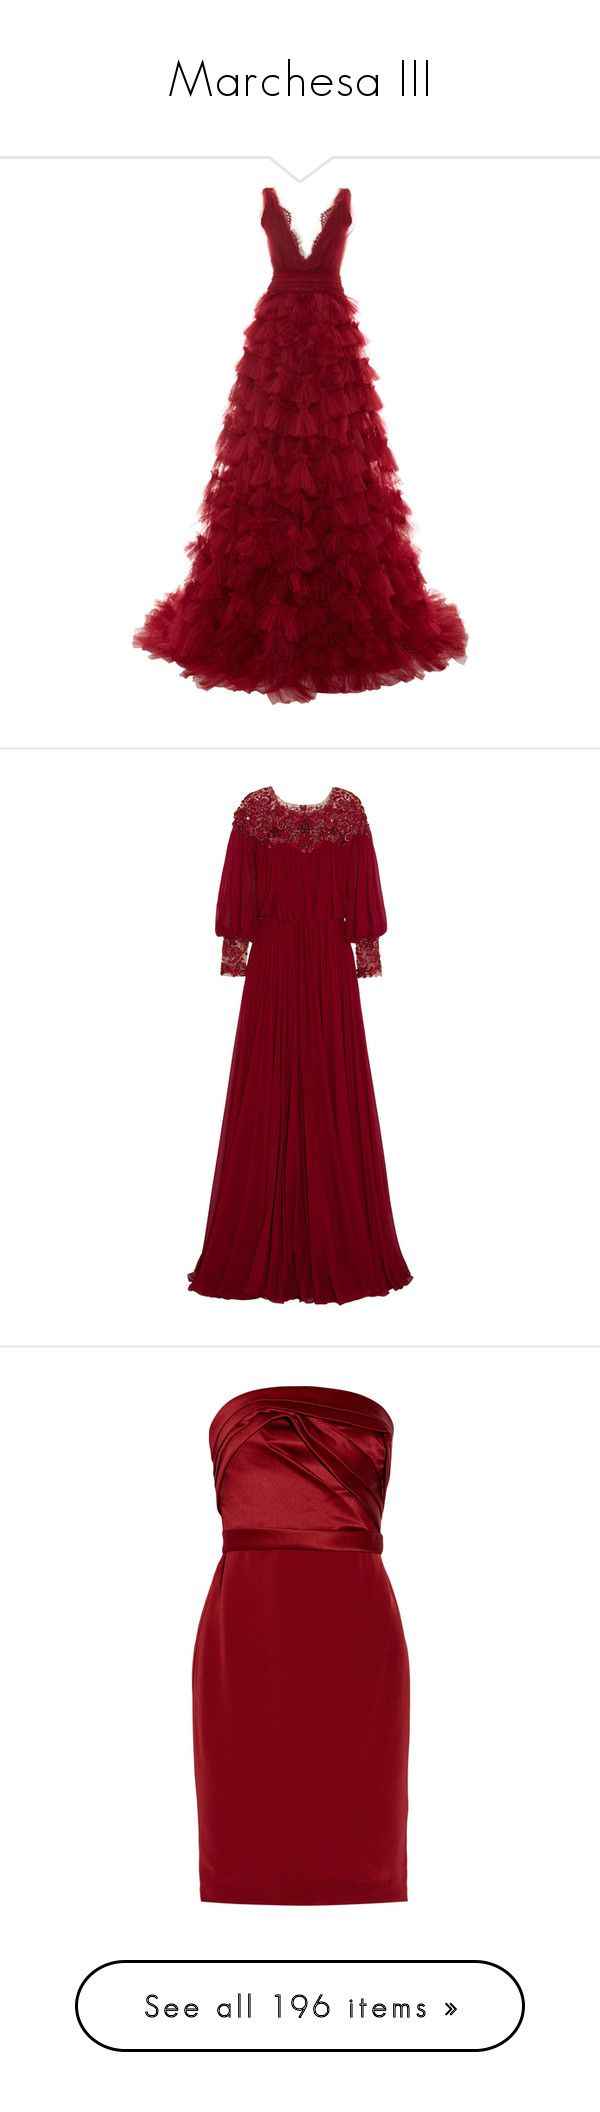 """Marchesa III"" by sakuragirl ❤ liked on Polyvore featuring dresses, gowns, long dresses, vestidos, red, marchesa gowns, red v neck dress, deep v-neck dresses, red evening dresses and marchesa"